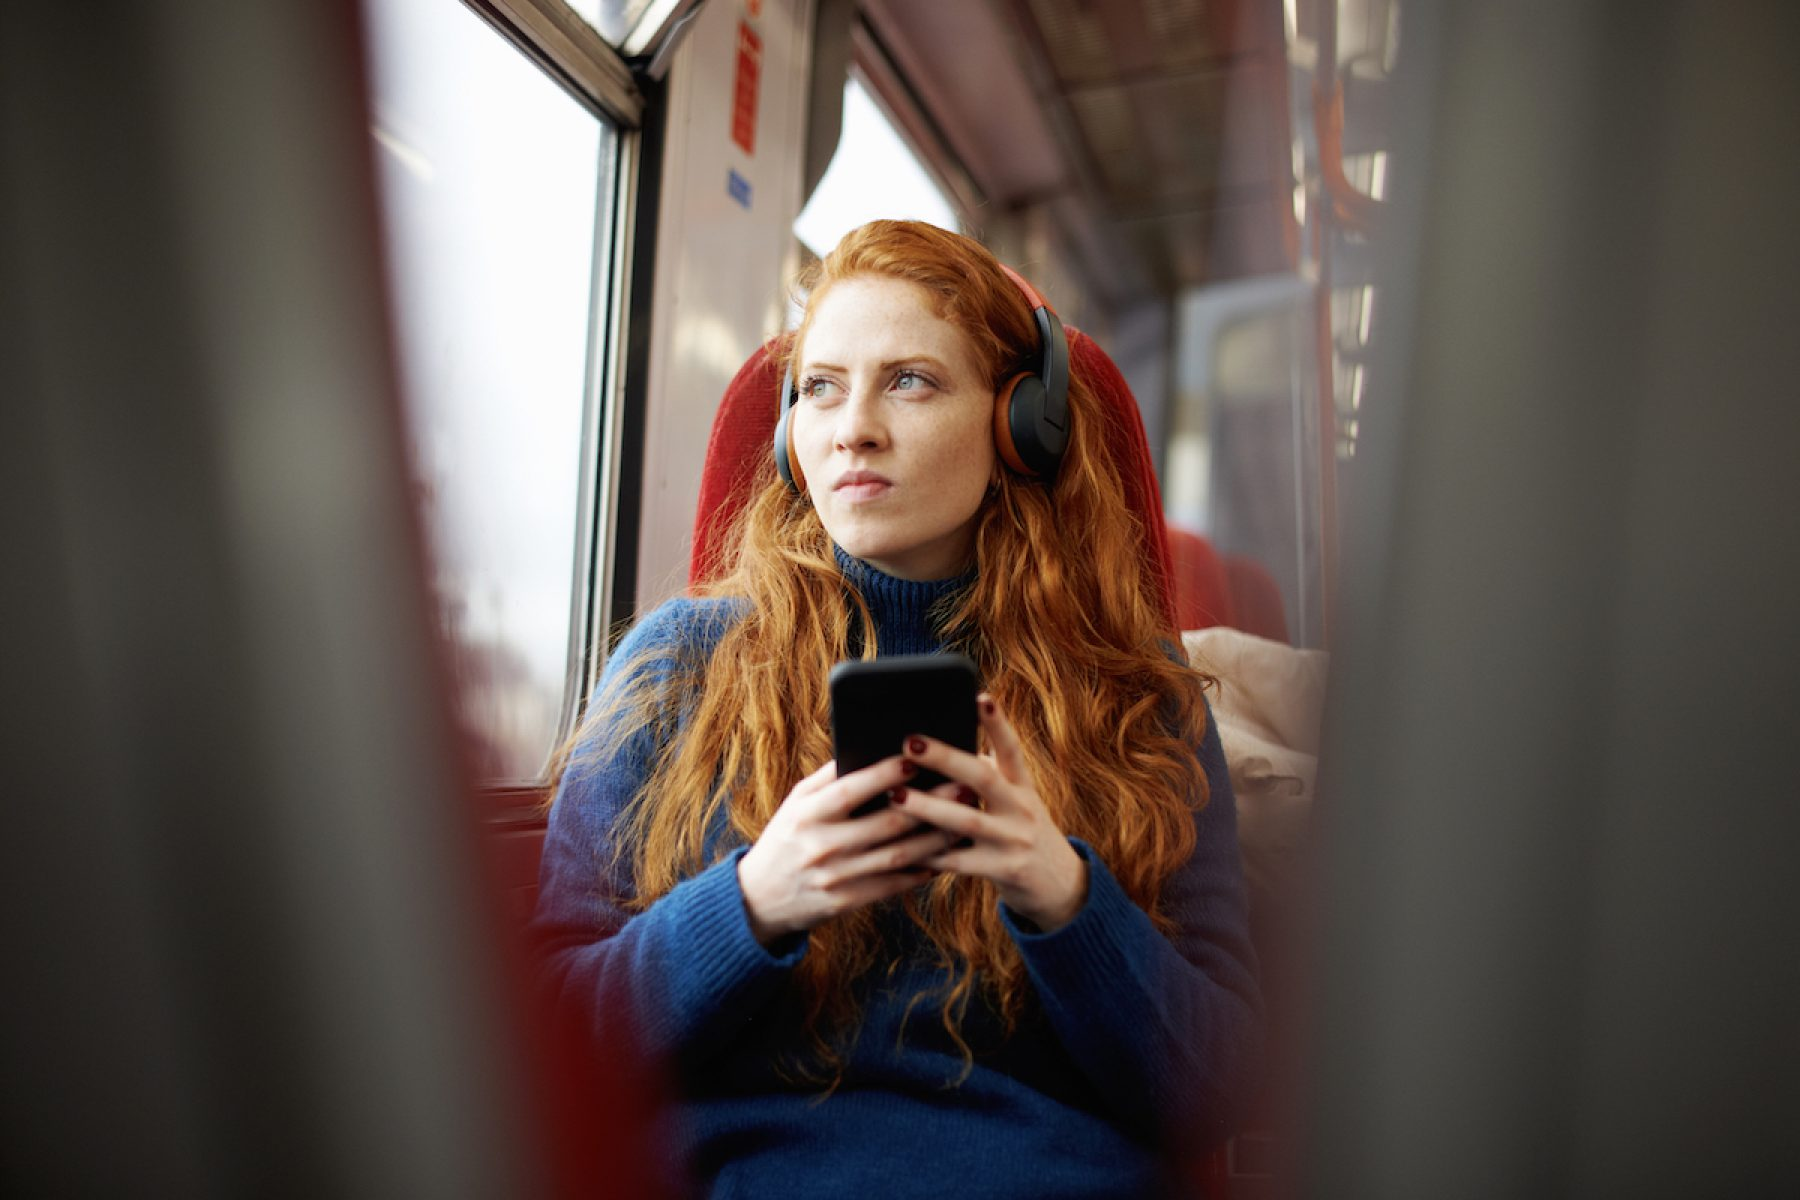 Image for 'Lifechanging': the scheme that offers free train travel to people fleeing abuse